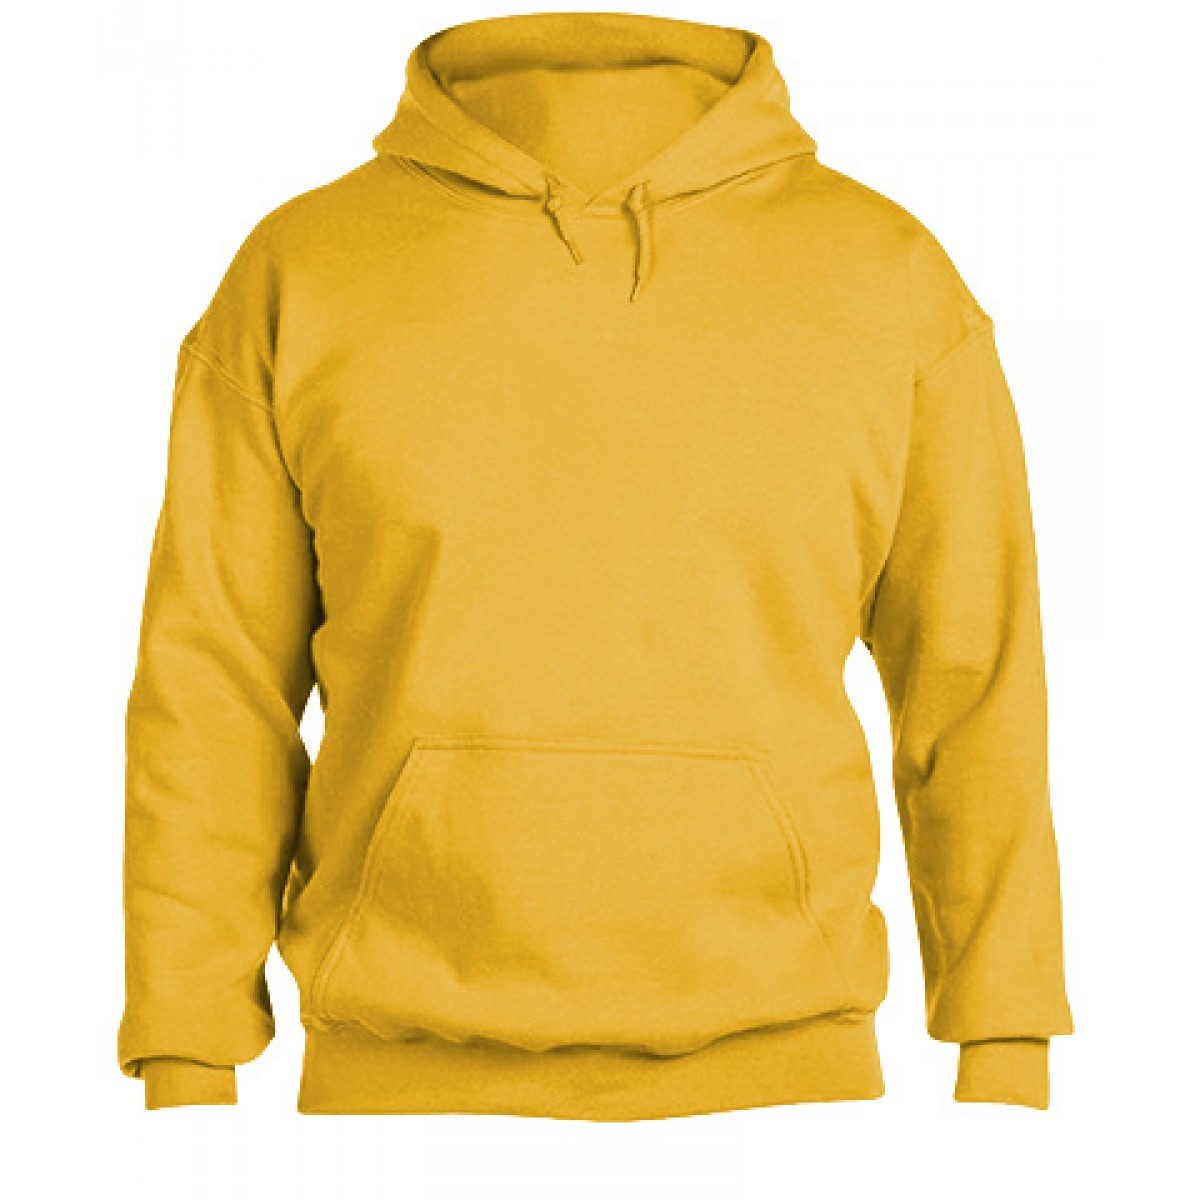 Hooded Sweatshirt 50/50 Heavy Blend -Gold-3XL